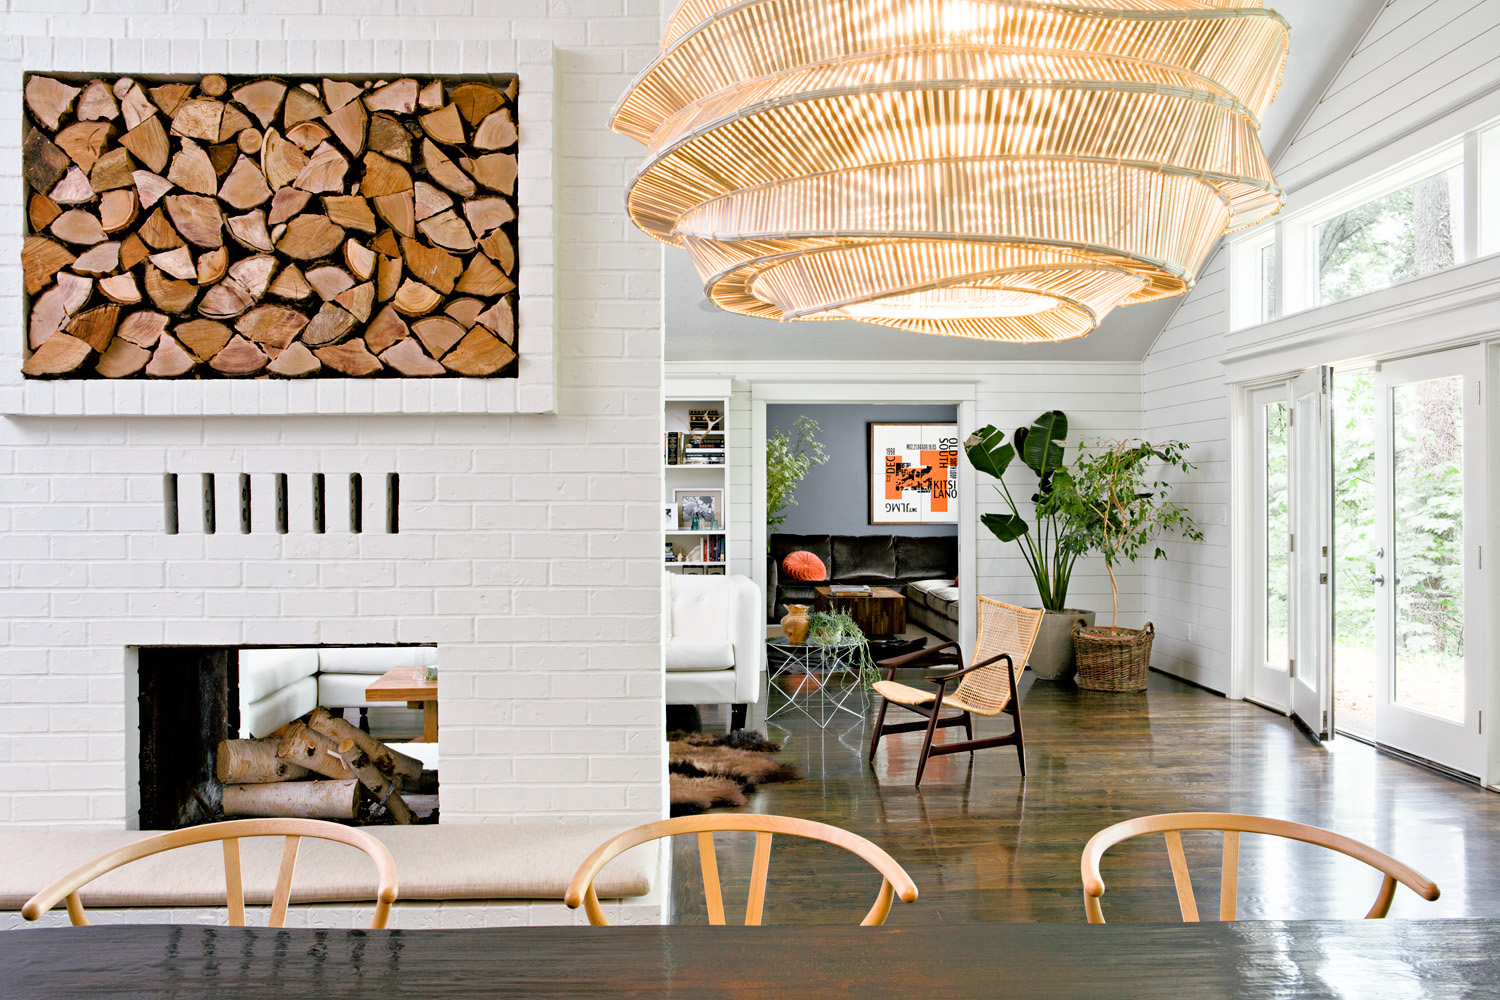 11 Chic Ideas for Fireplaces